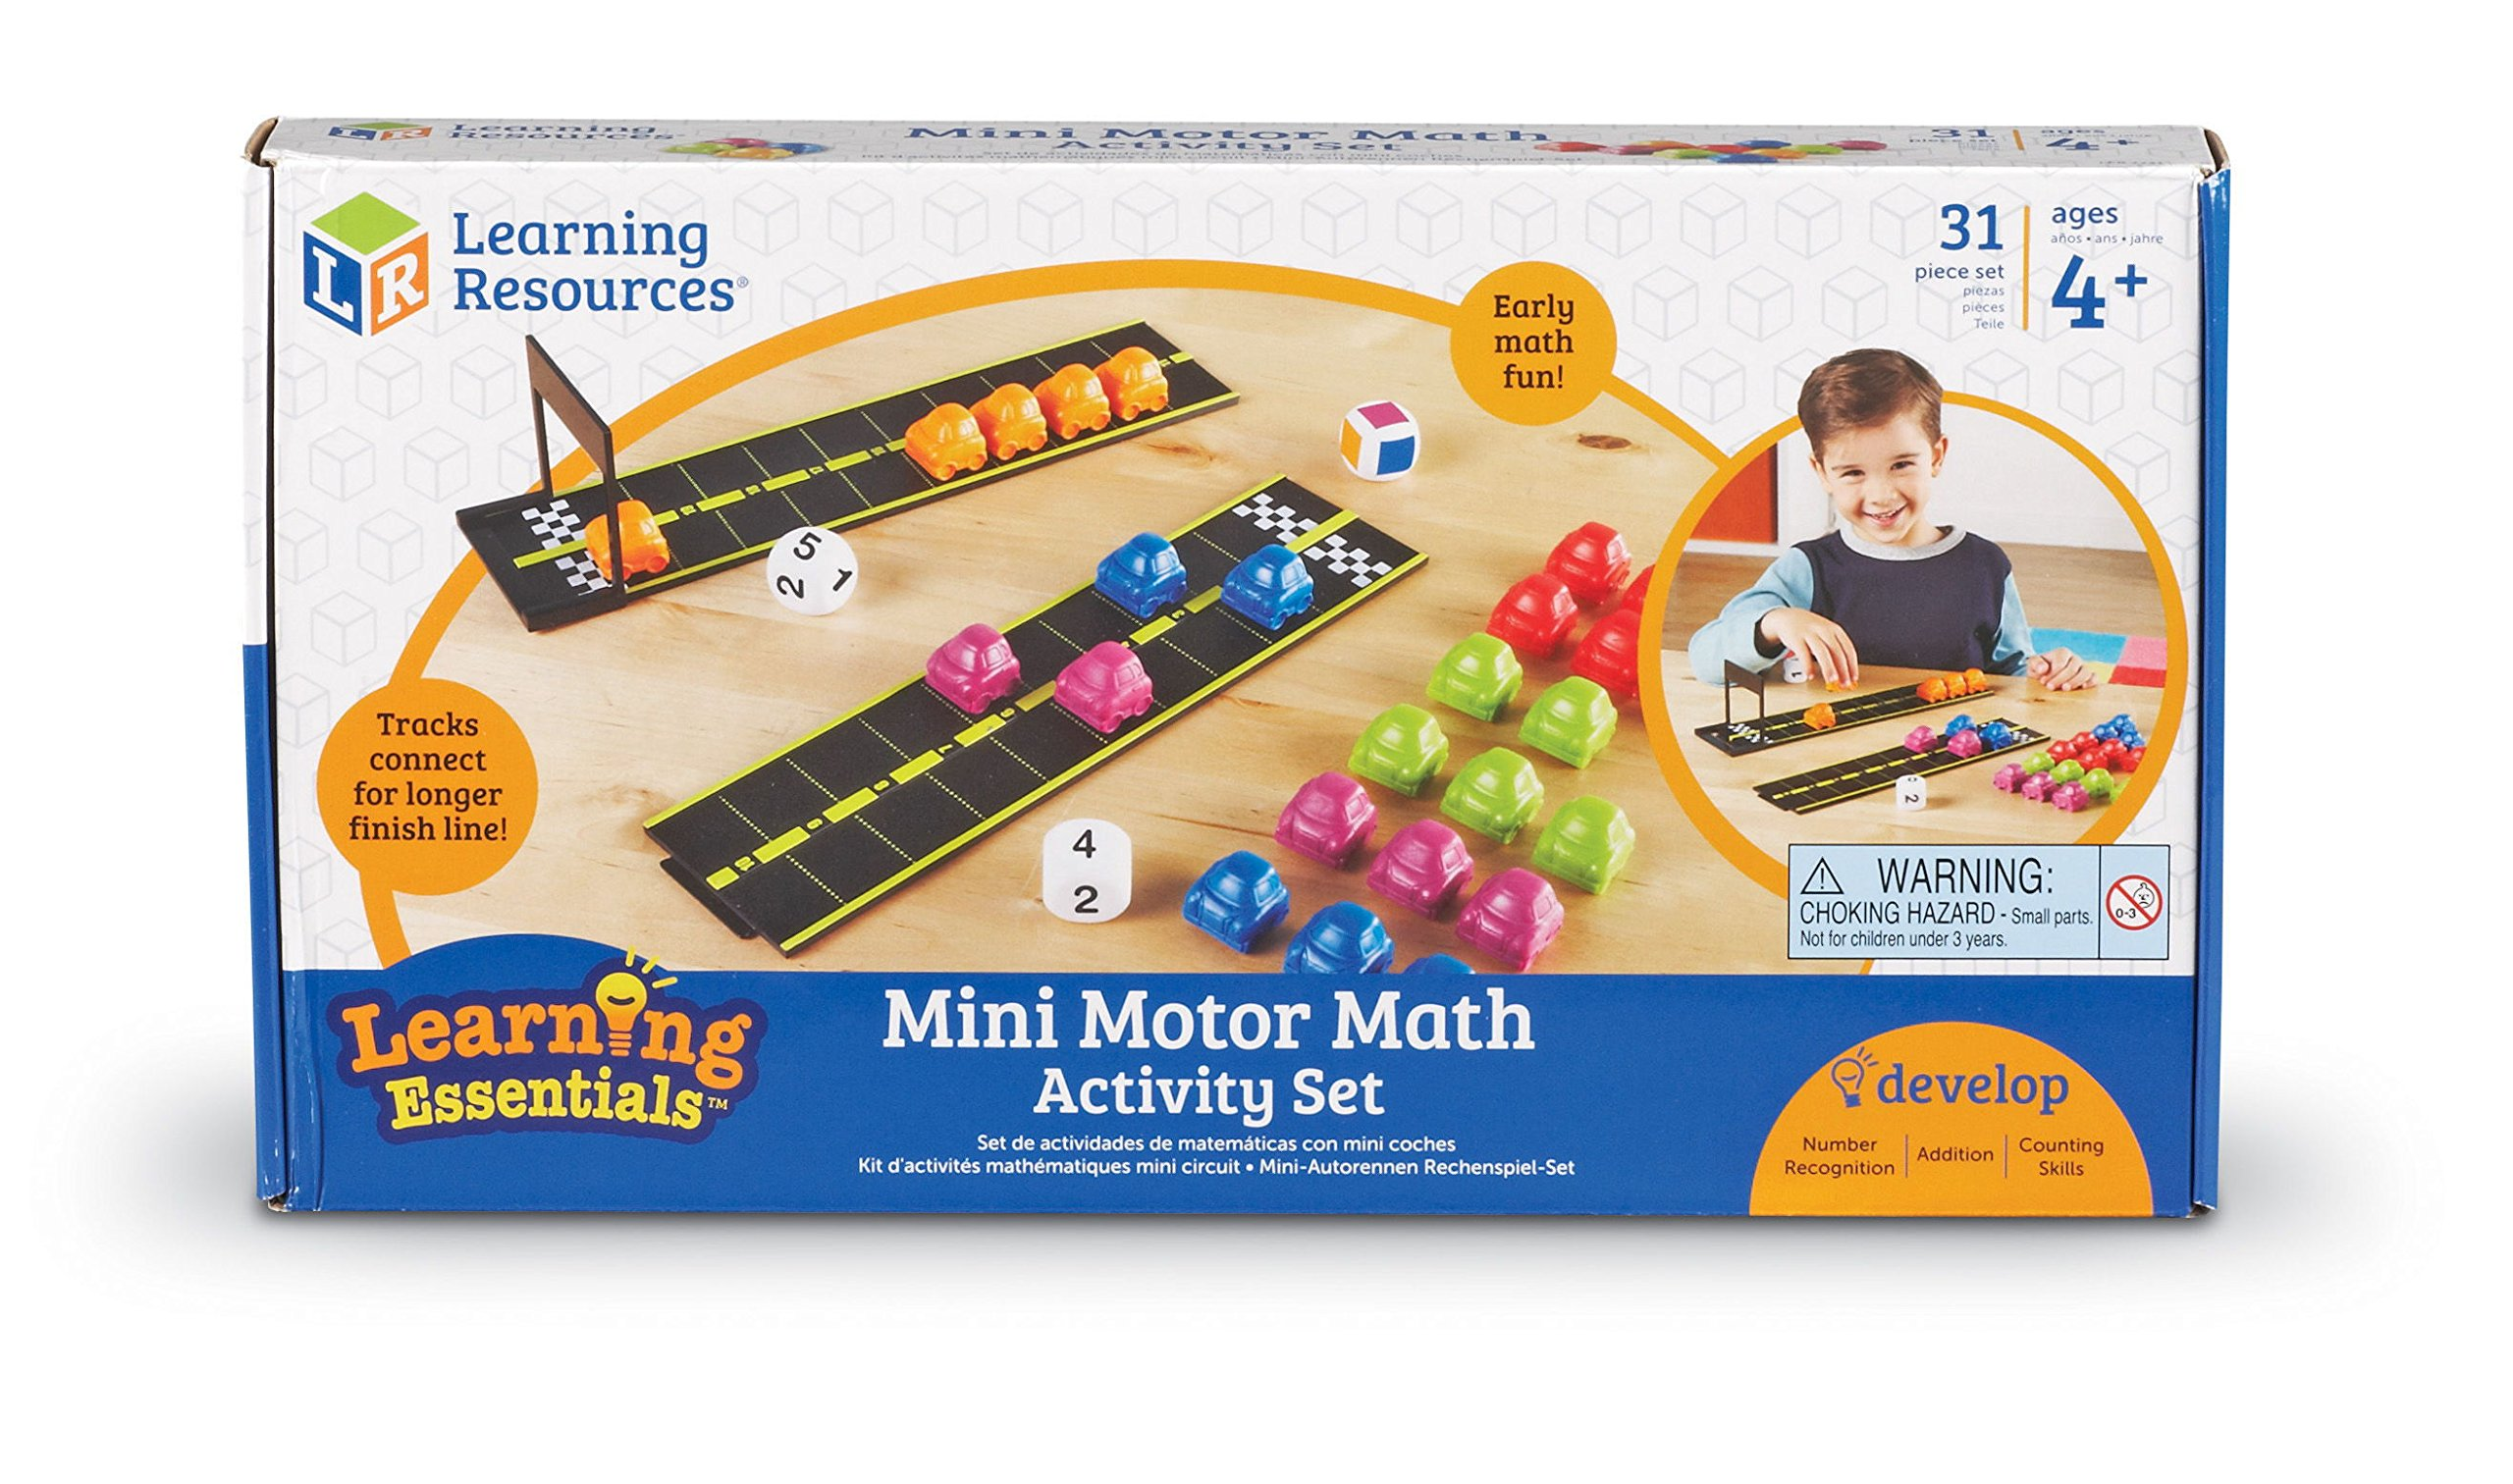 Learning Resources Mini Motor Math Activity Set (LER7731)